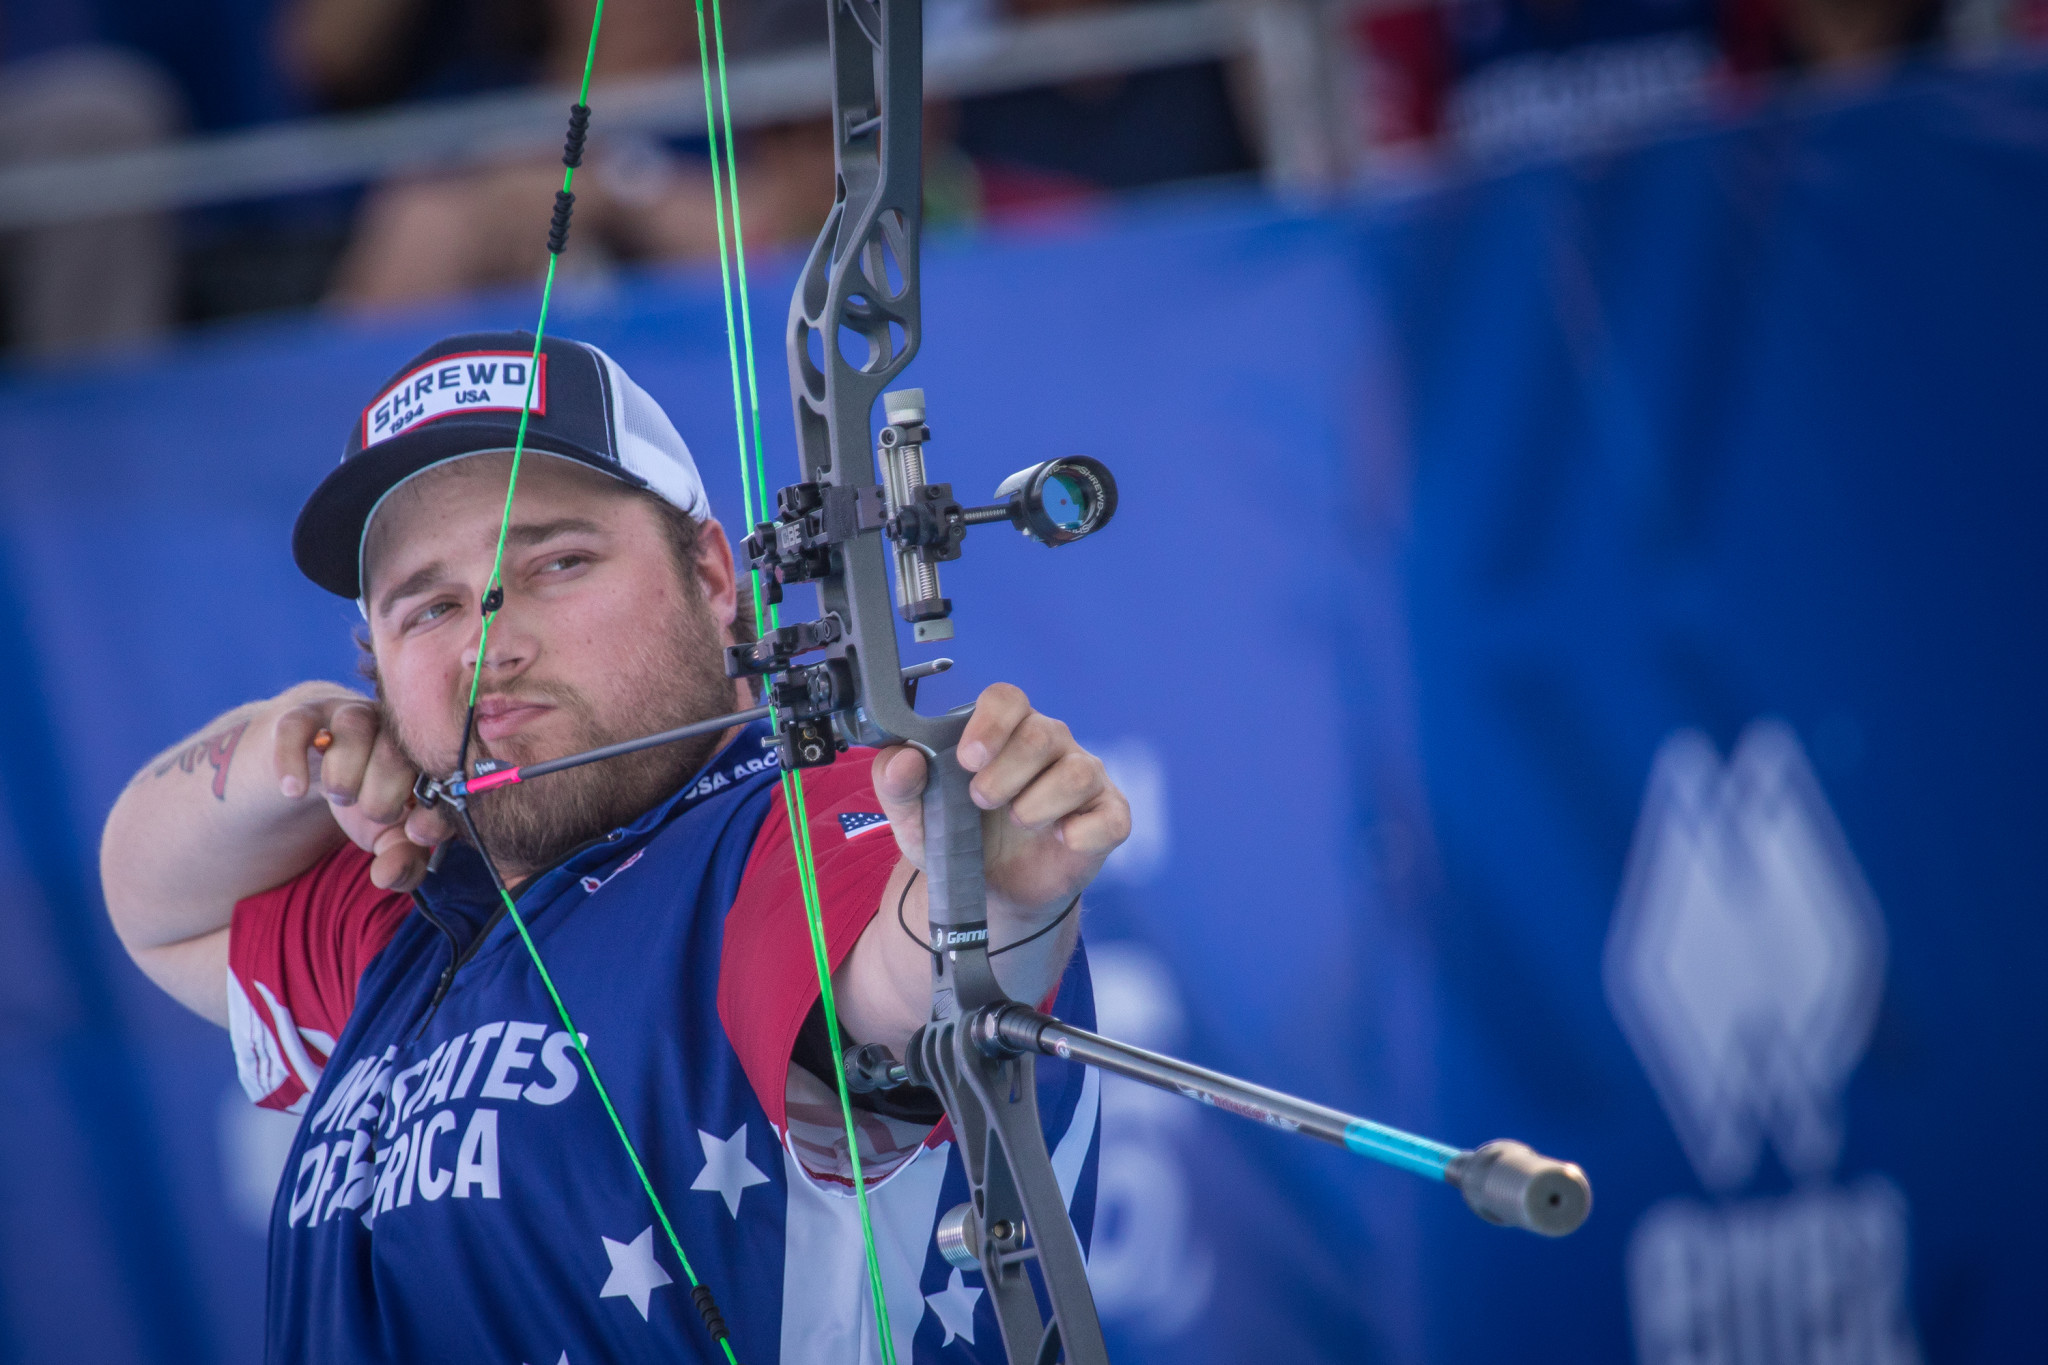 The United States' Kris Schaff was one of the stand-out performers in men's compound qualification ©Getty Images